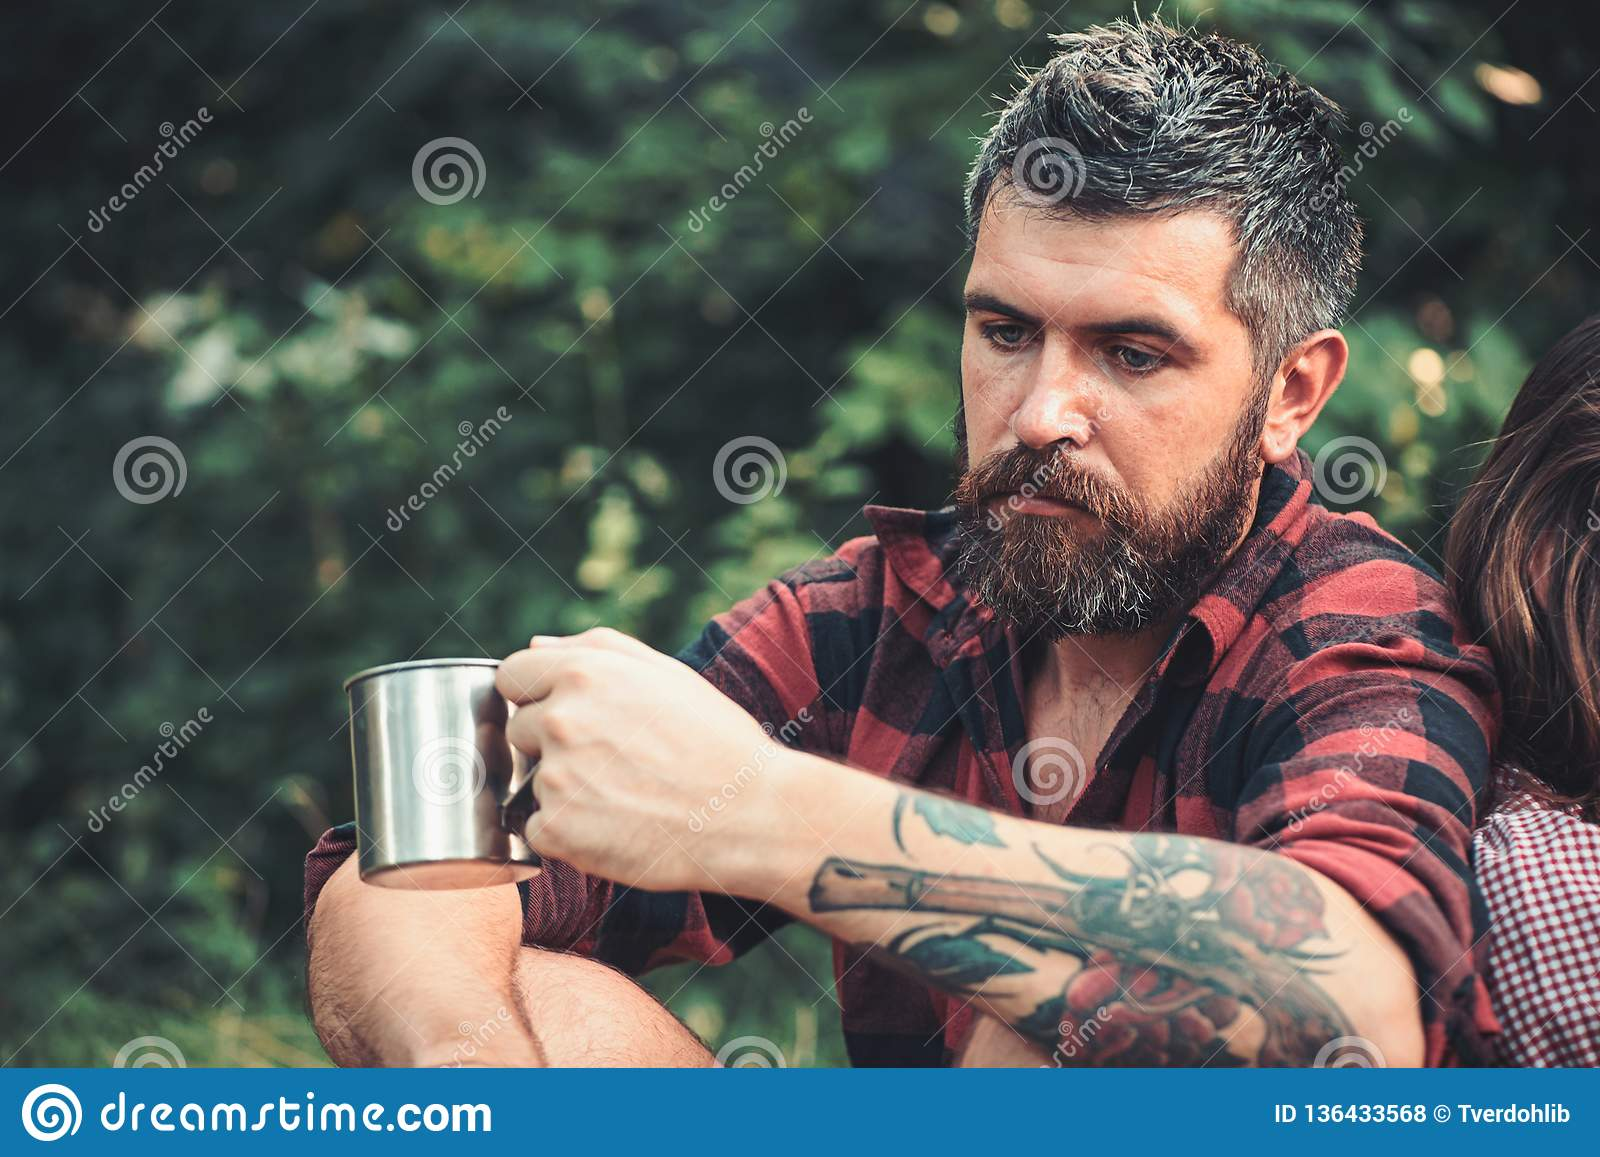 Bearded man with tea or coffee cup in forest. Tourist in plaid shirt hold mug. Hipster with long beard relax on natural